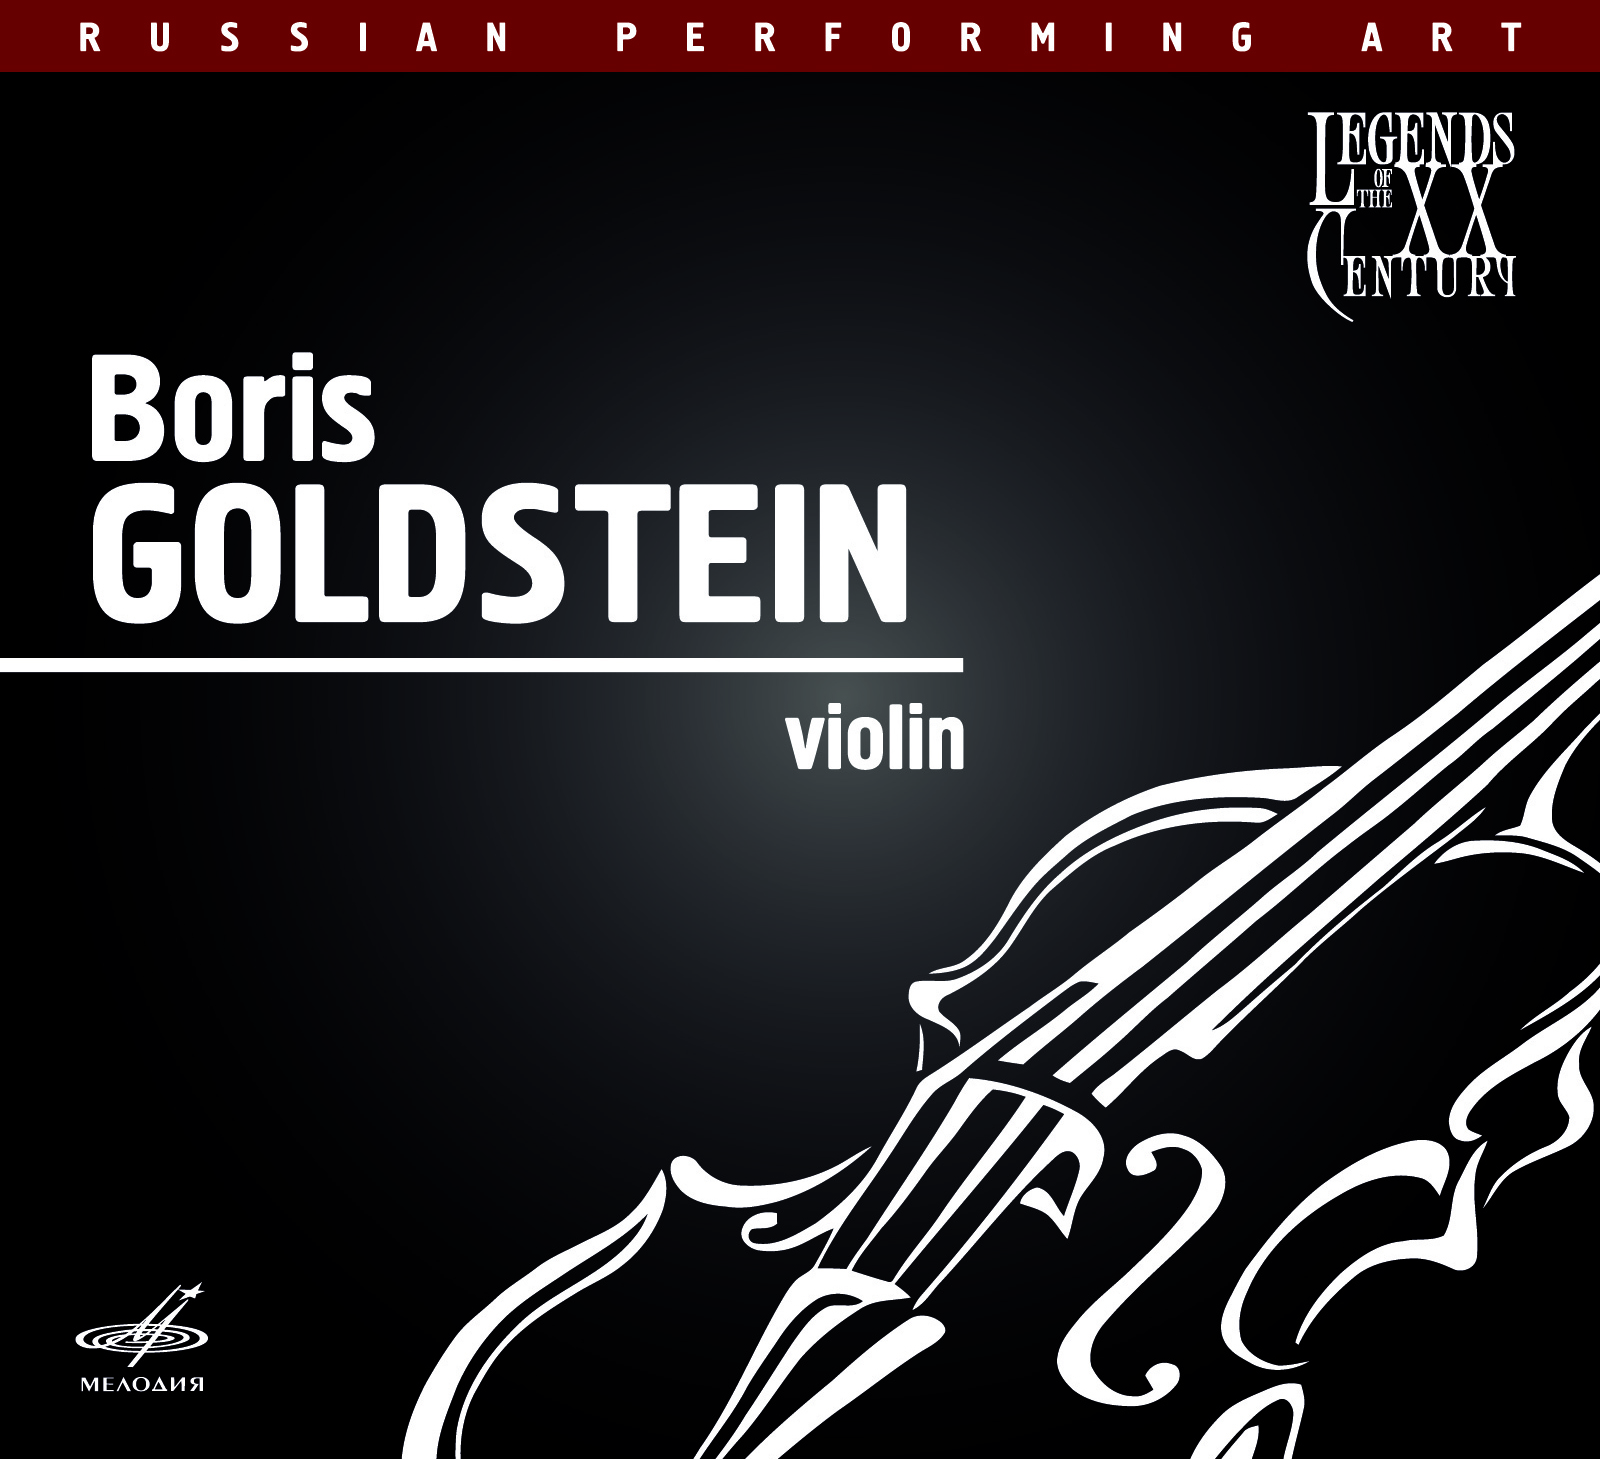 Russian Performing Art: Boris Goldstein, Violin (1 CD) - Classical